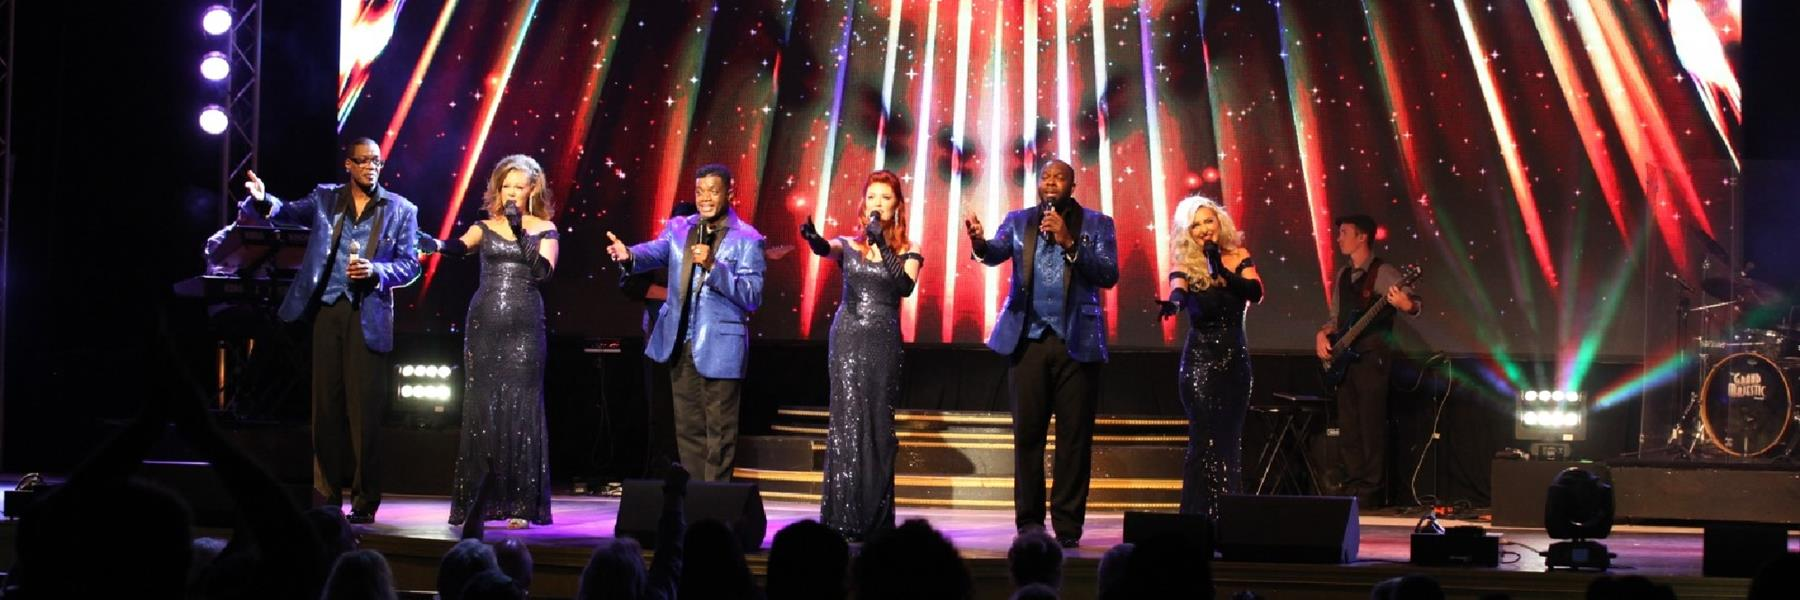 Soul of Motown in Pigeon Forge, Tennessee